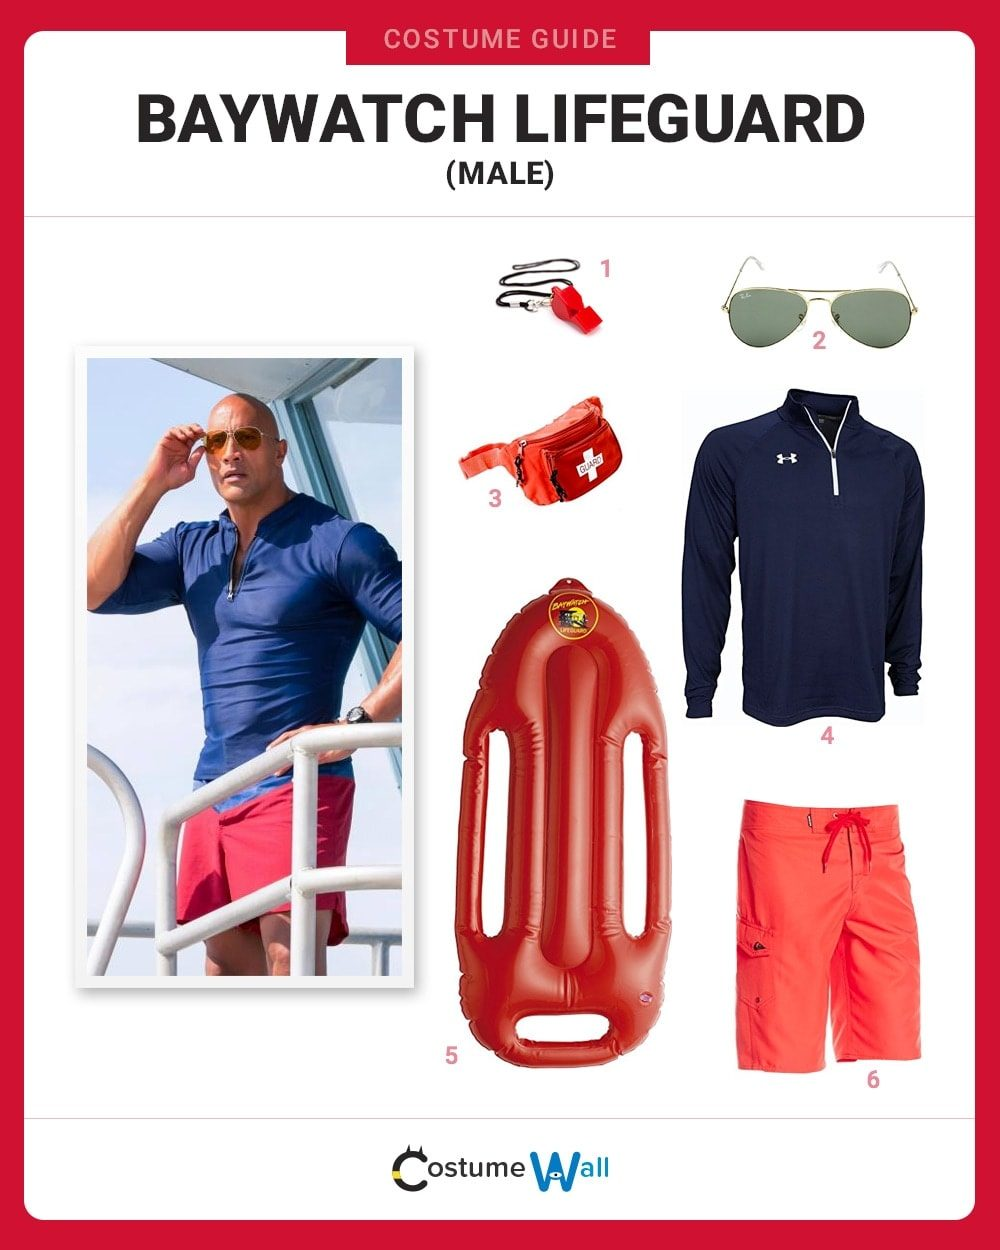 Baywatch Lifeguard (Male) Costume Guide